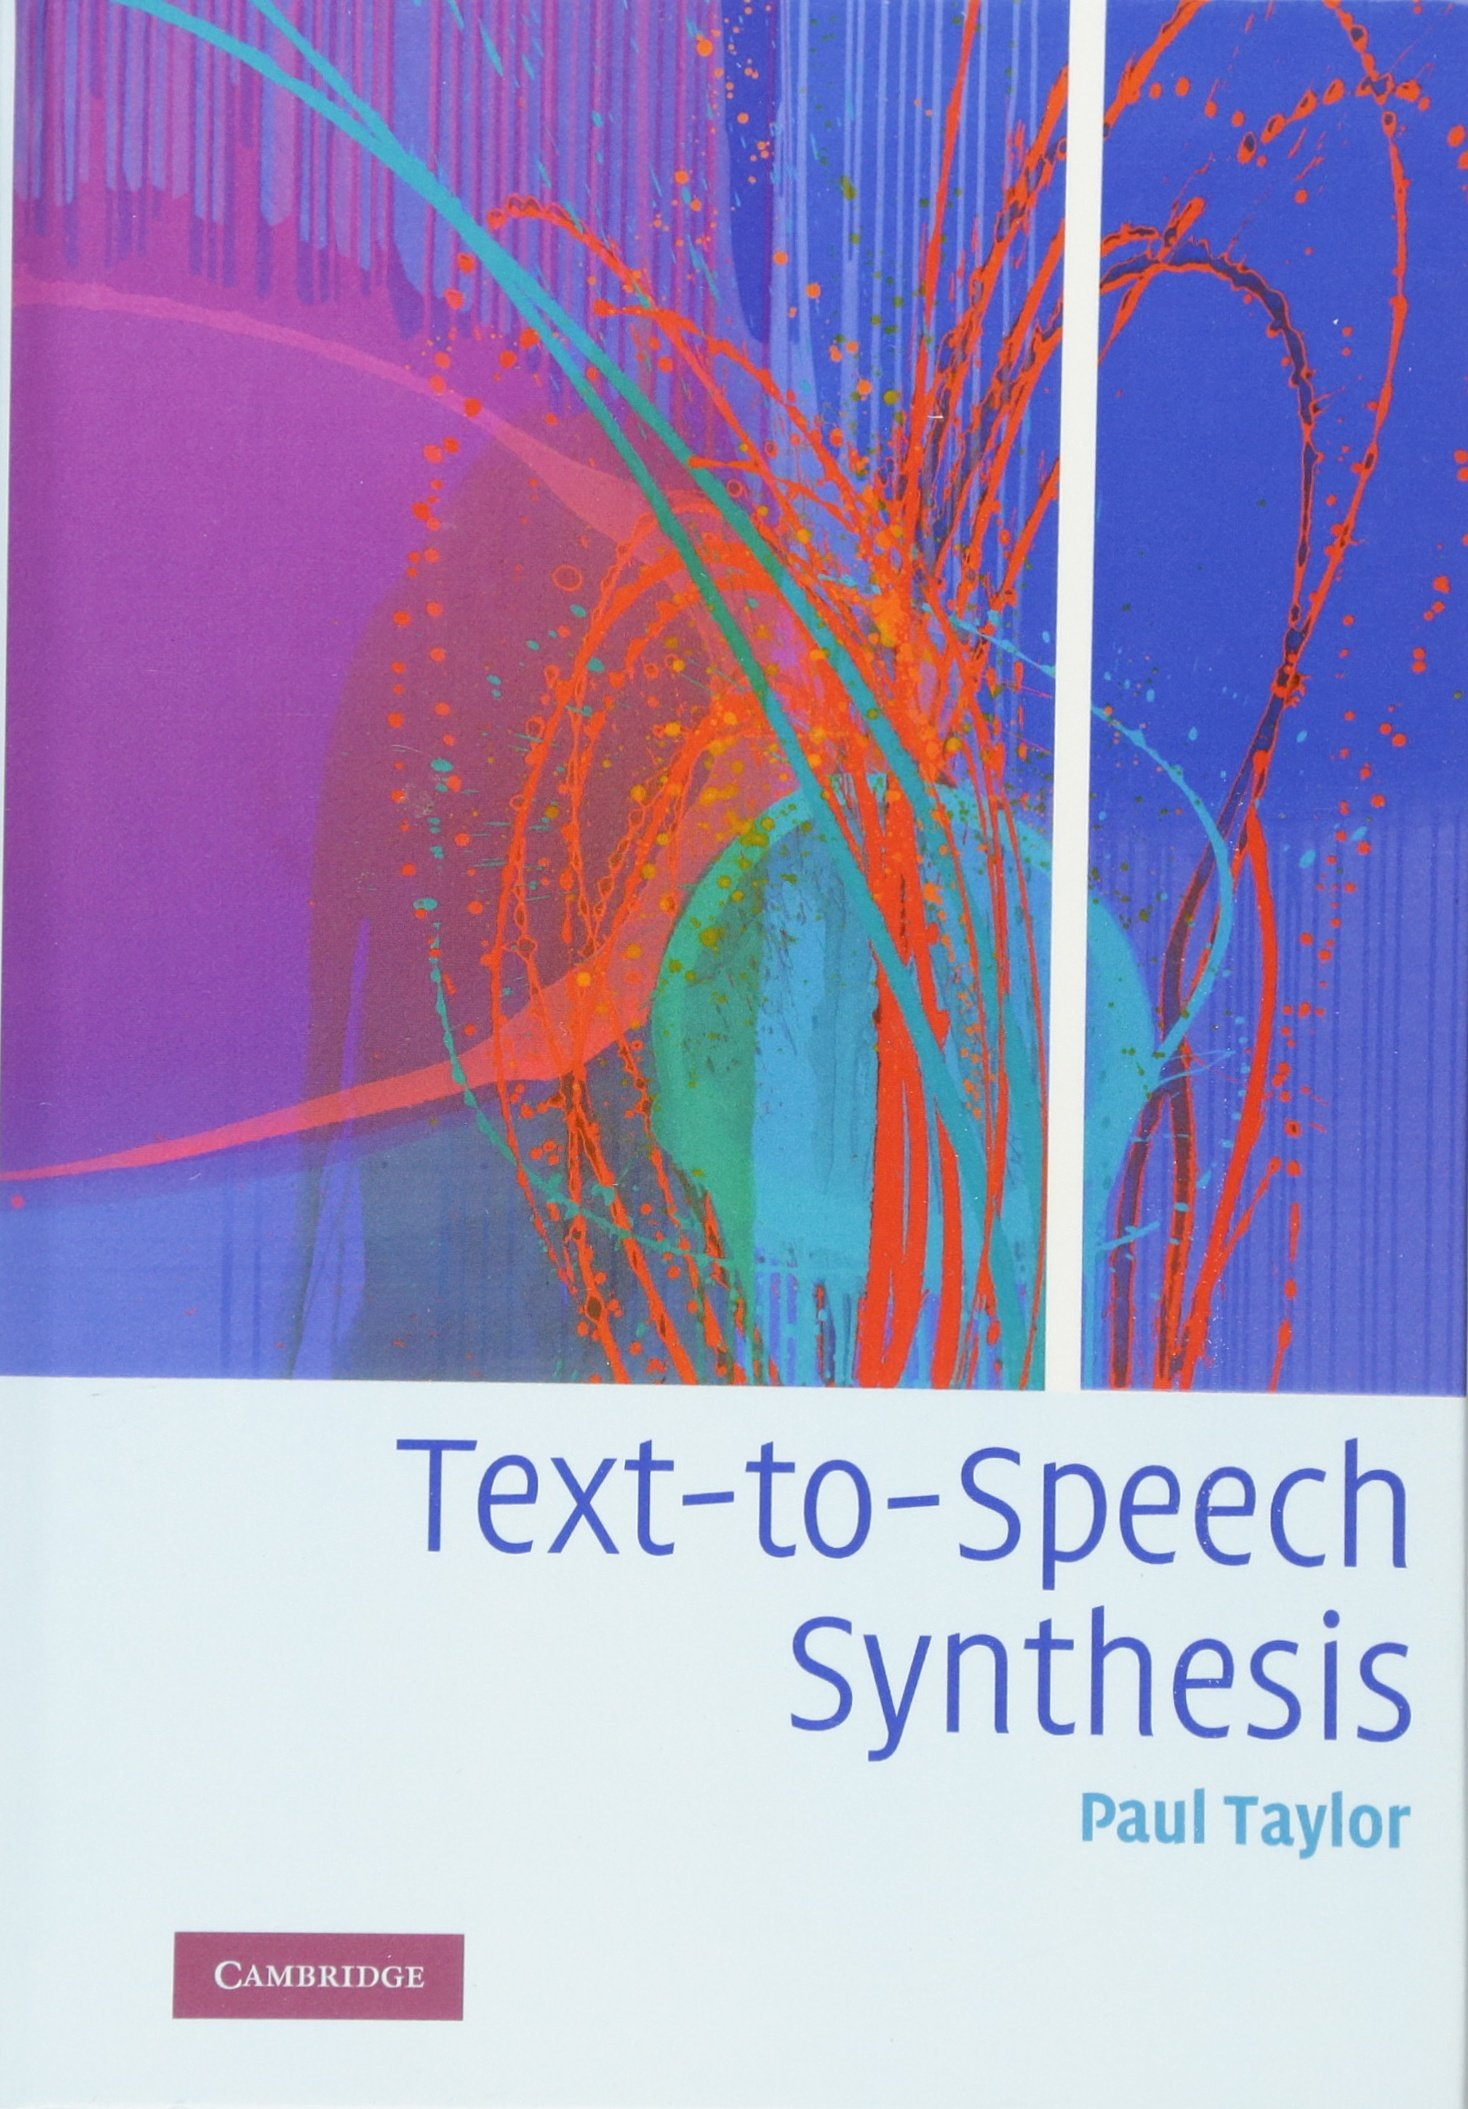 TEXT-TO-SPEECH SYNTHESIS TAYLOR EBOOK DOWNLOAD